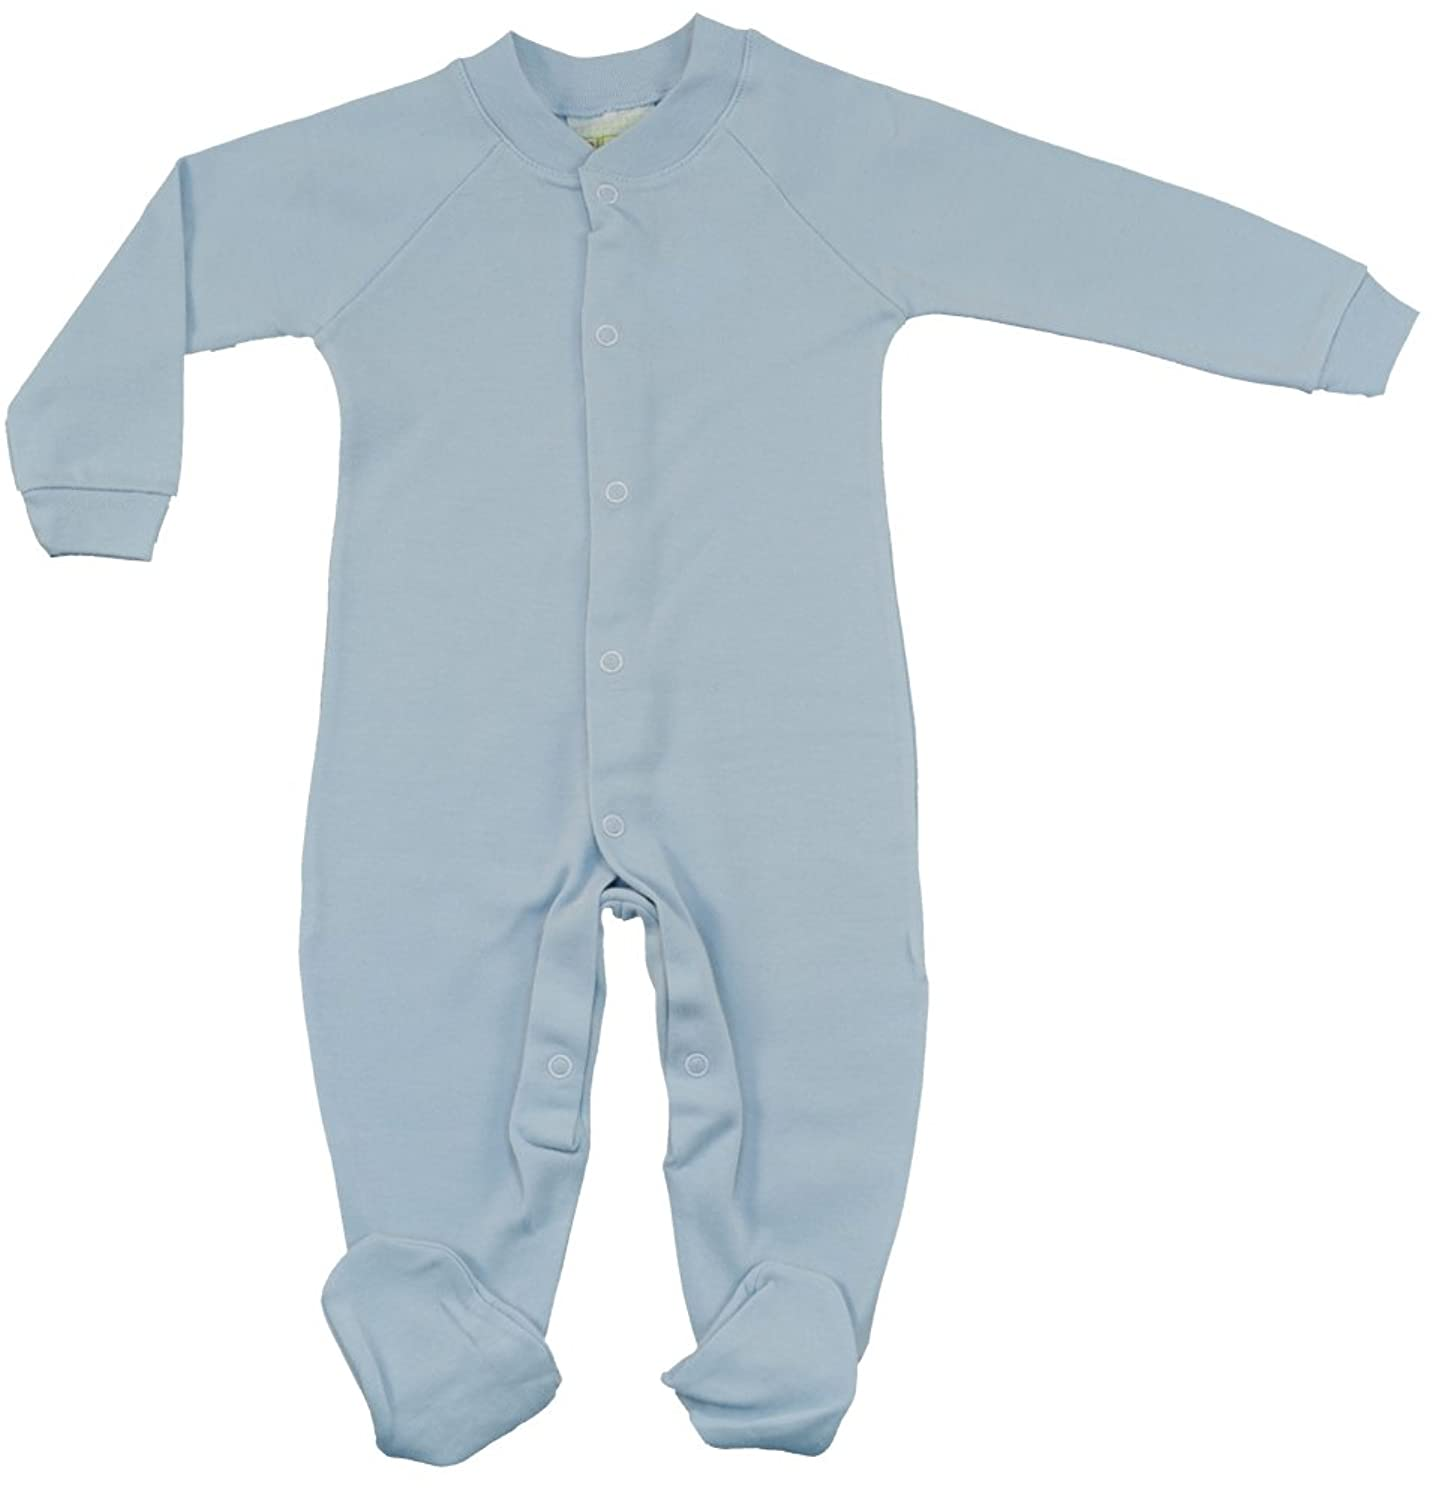 Amazon PAM baby footed sleeper Clothing